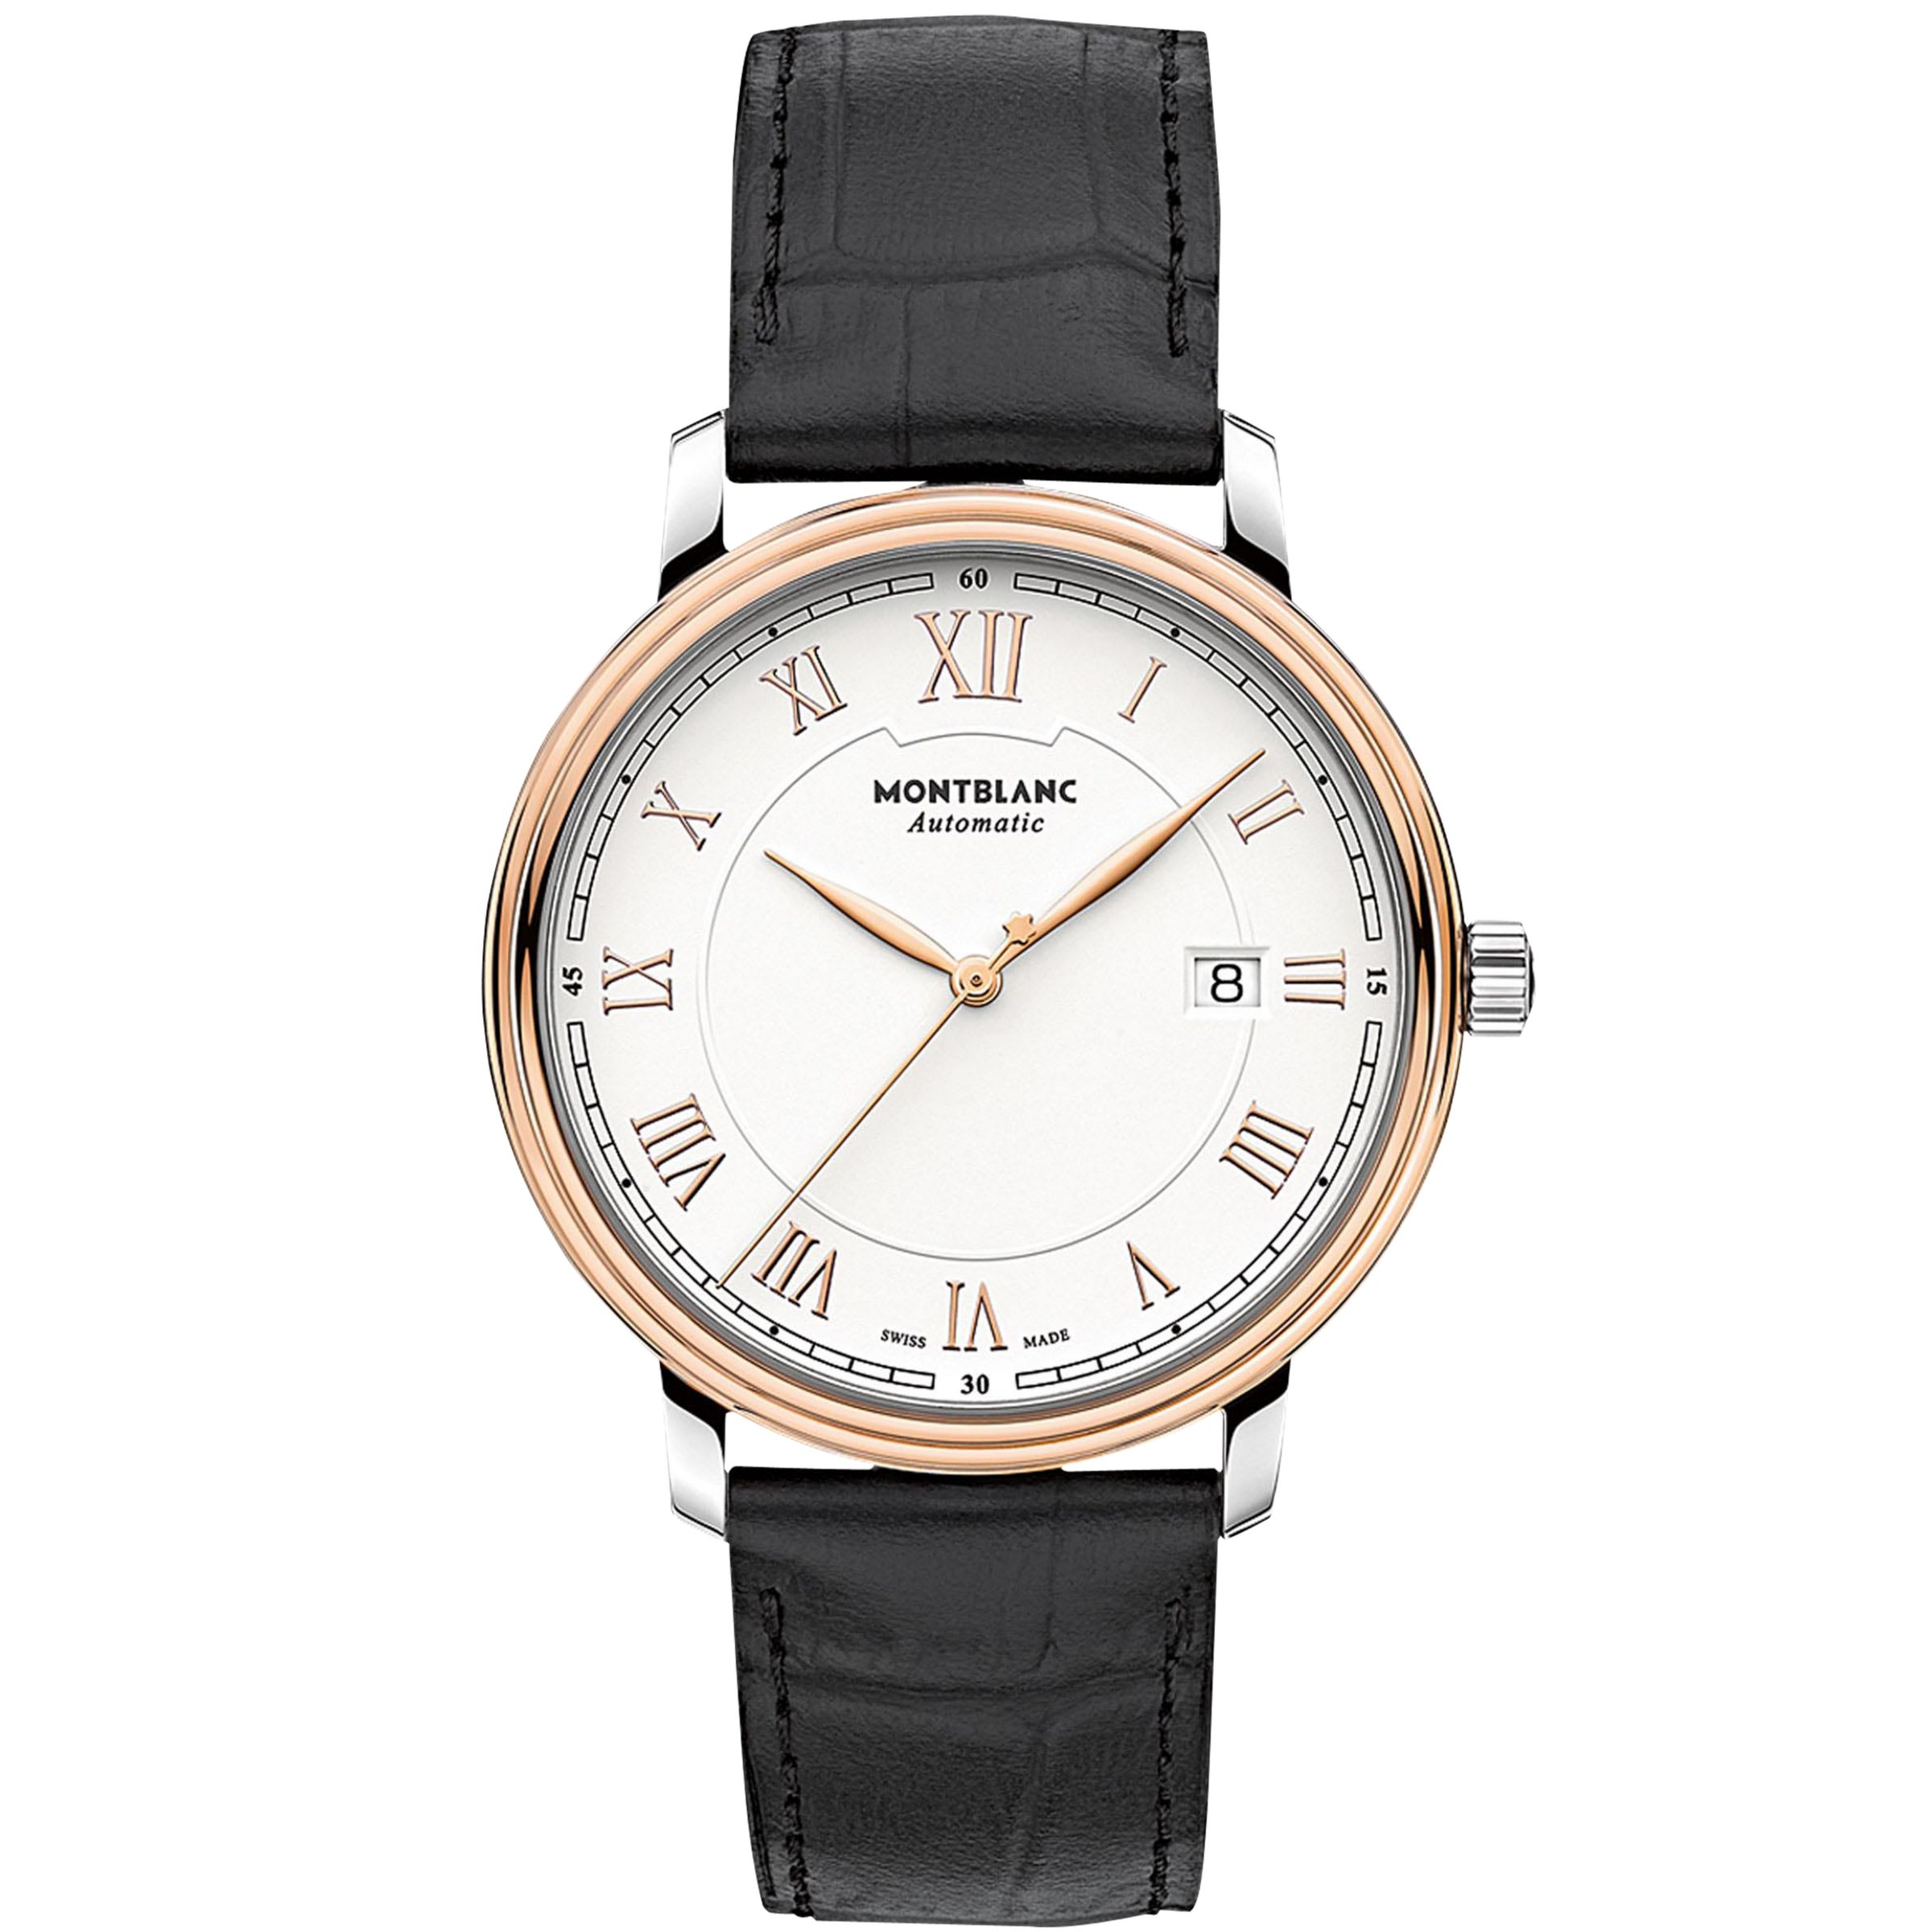 Montblanc Montblanc 114336 Men's Tradition Automatic Date Alligator Leather Strap Watch, Black/White